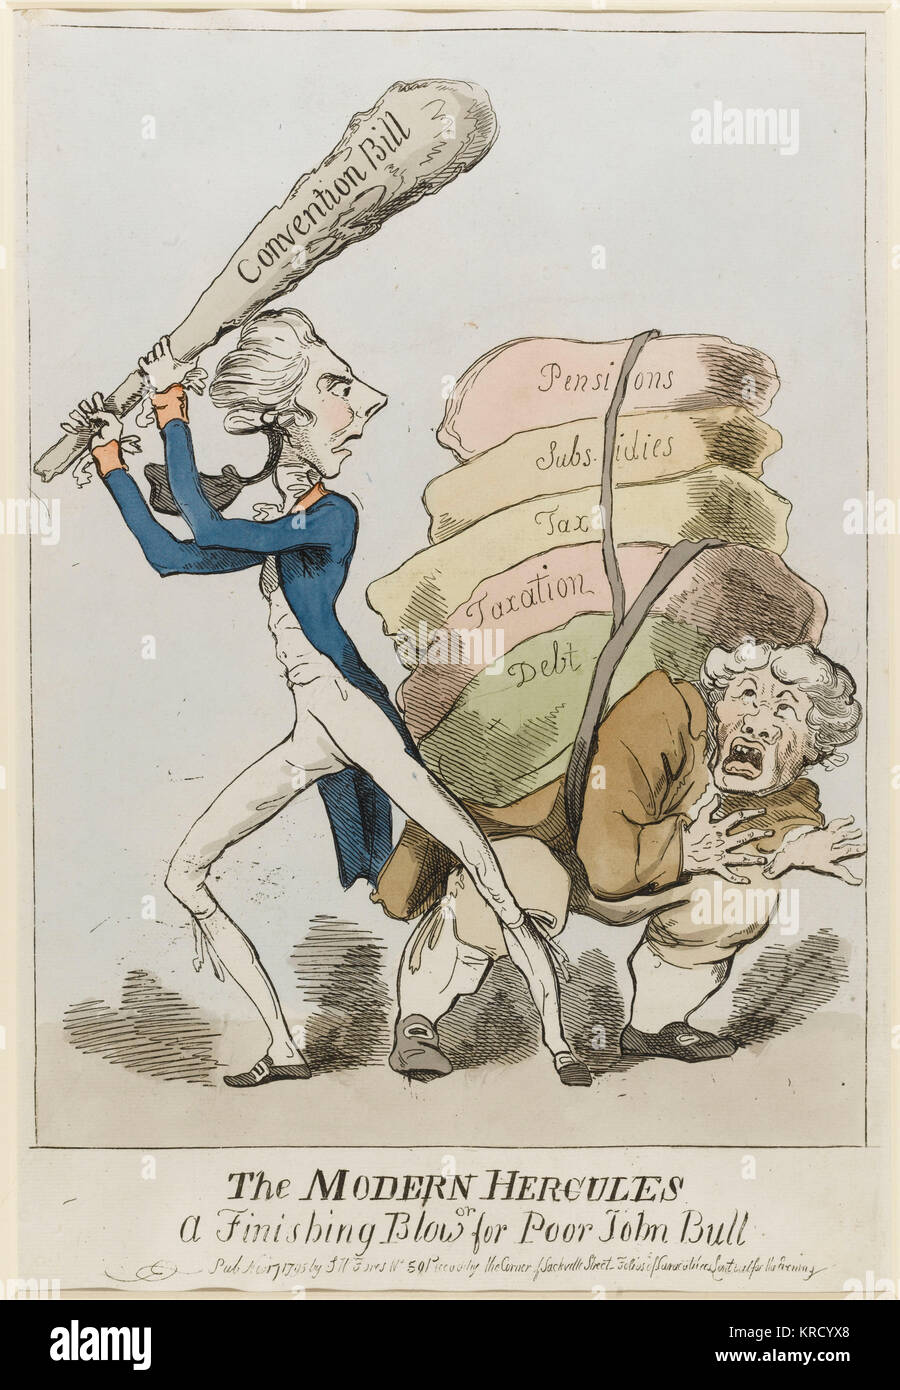 Satirical cartoon, The Modern Hercules, or A Finishing Blow for Poor John Bull.  A caricature of William Pitt as - Stock Image